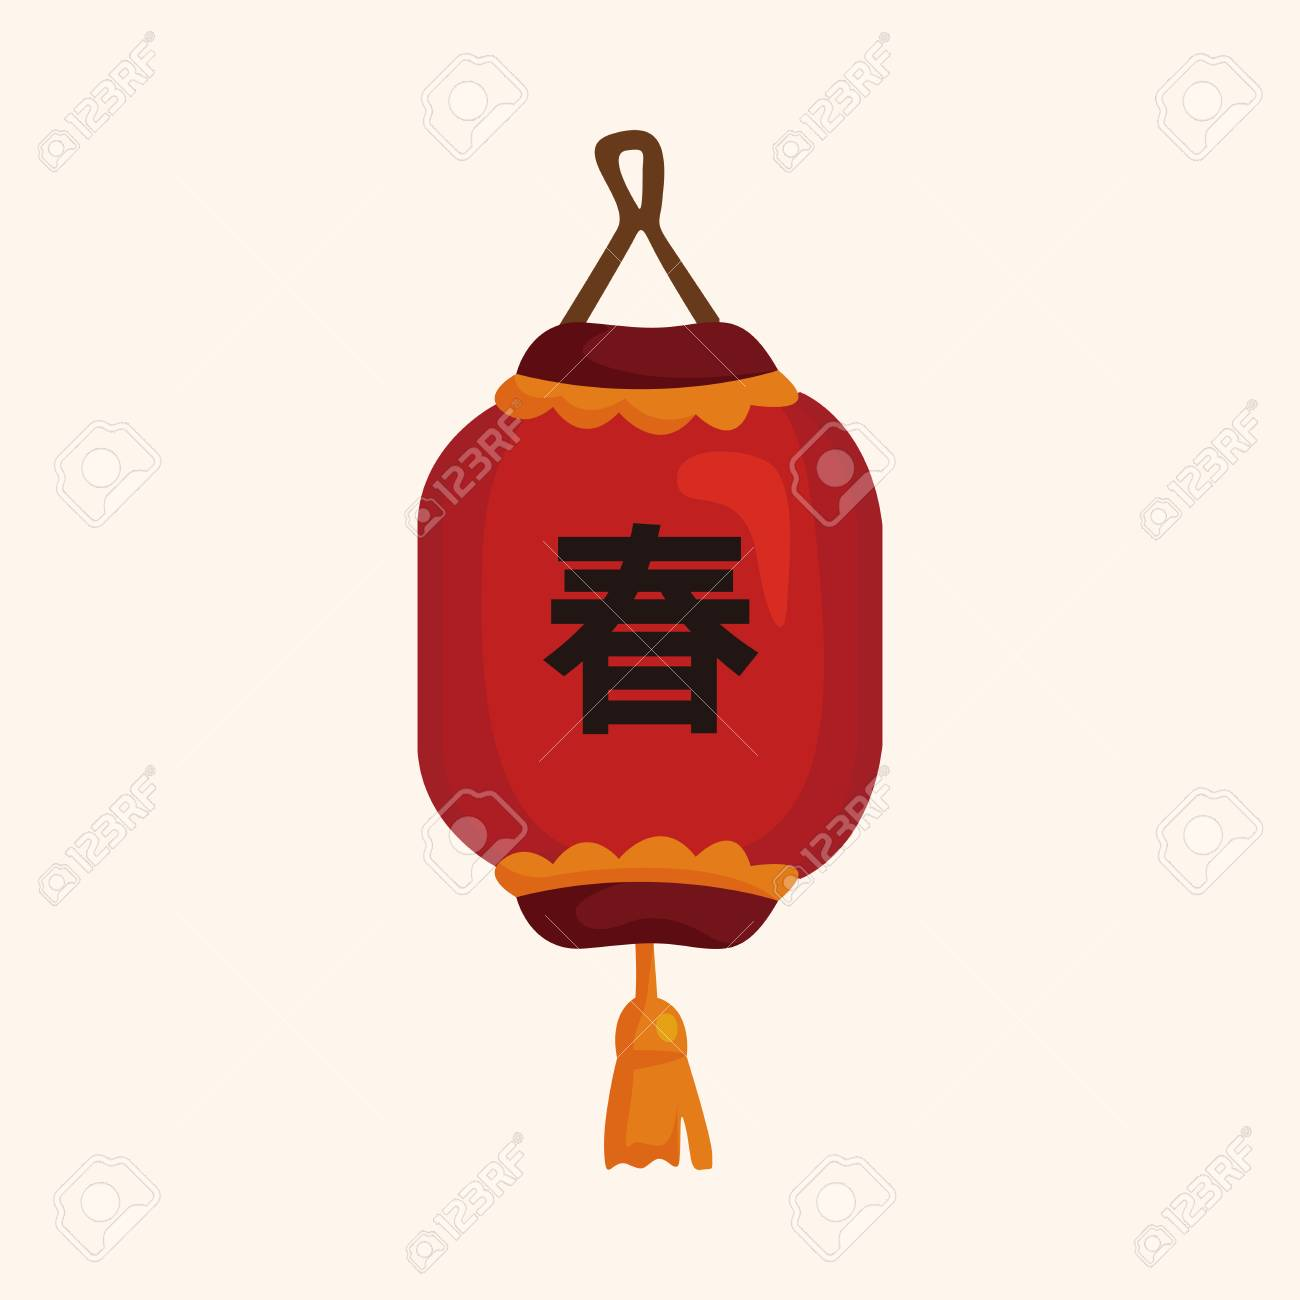 chinese new year theme elements chinese decorative lantern stock vector 37219927